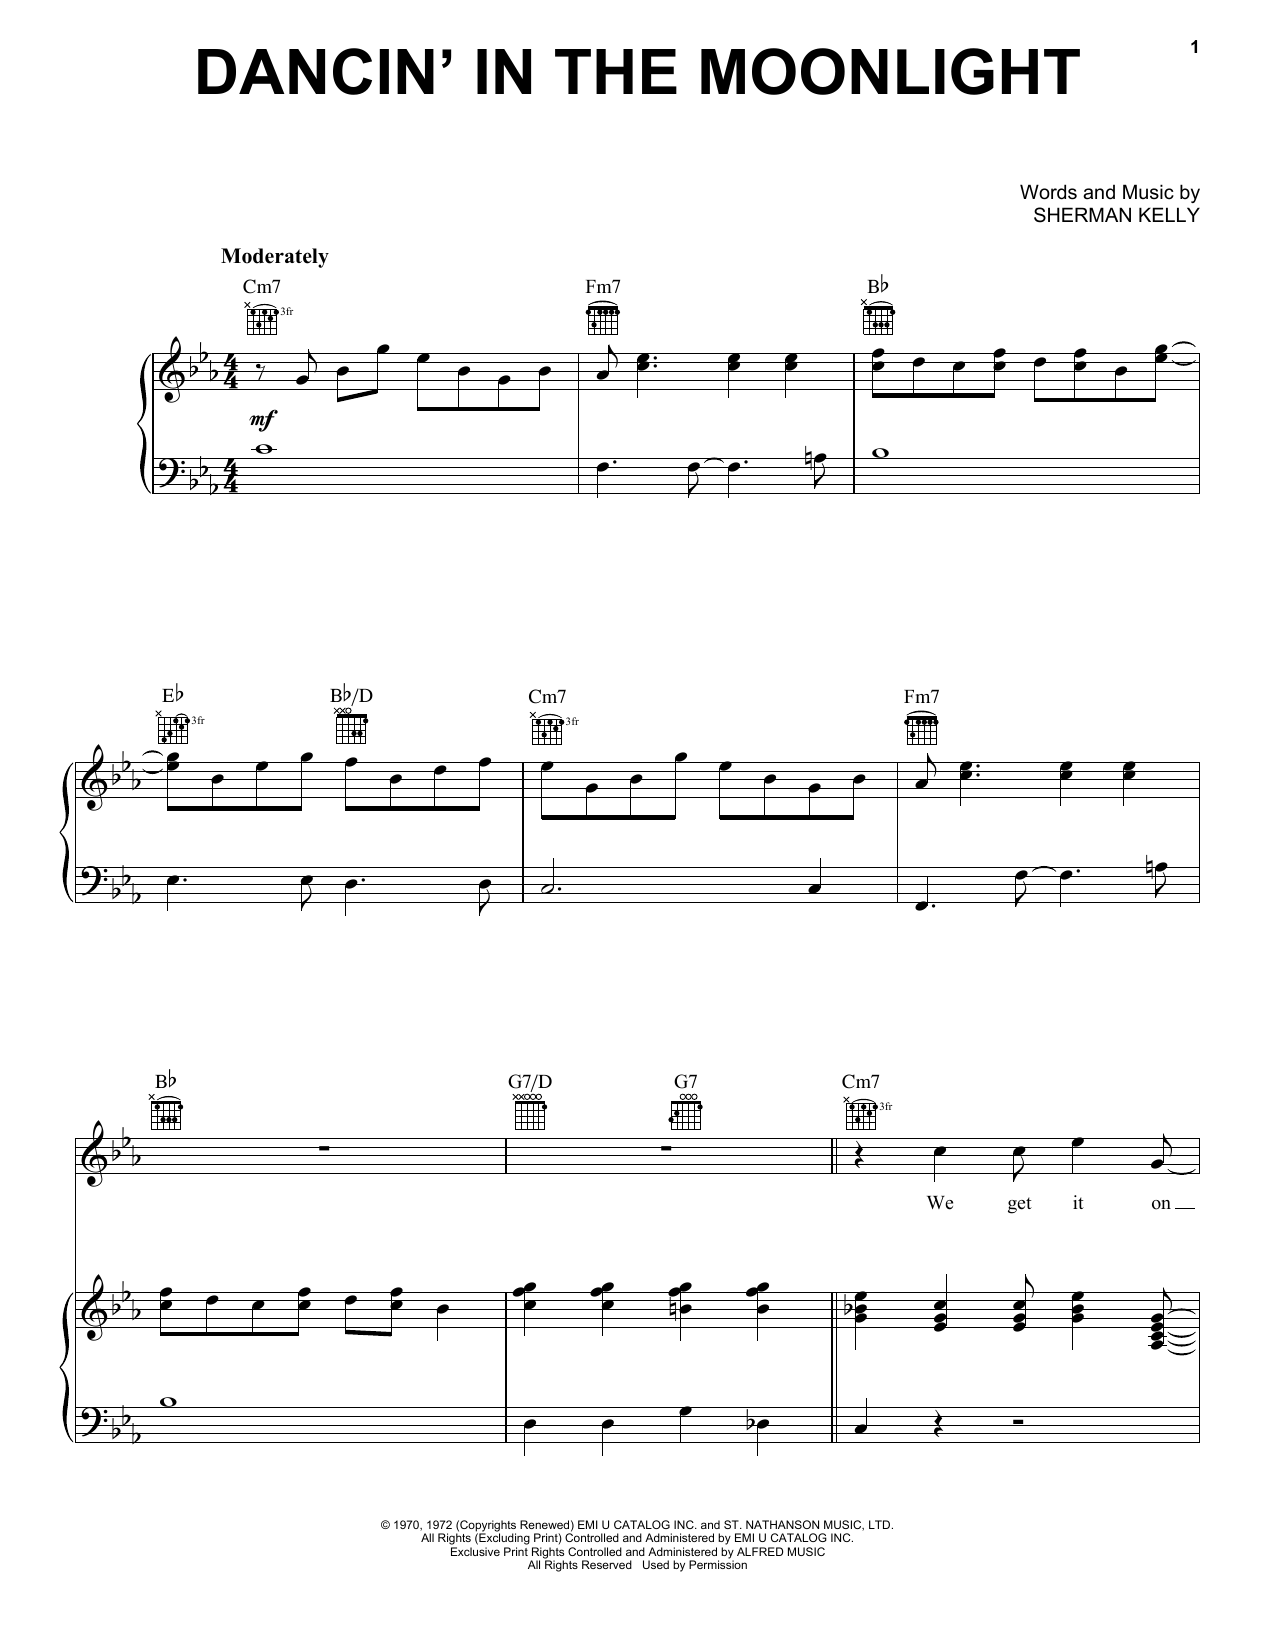 King Harvest Dancin' In The Moonlight sheet music notes and chords - download printable PDF.